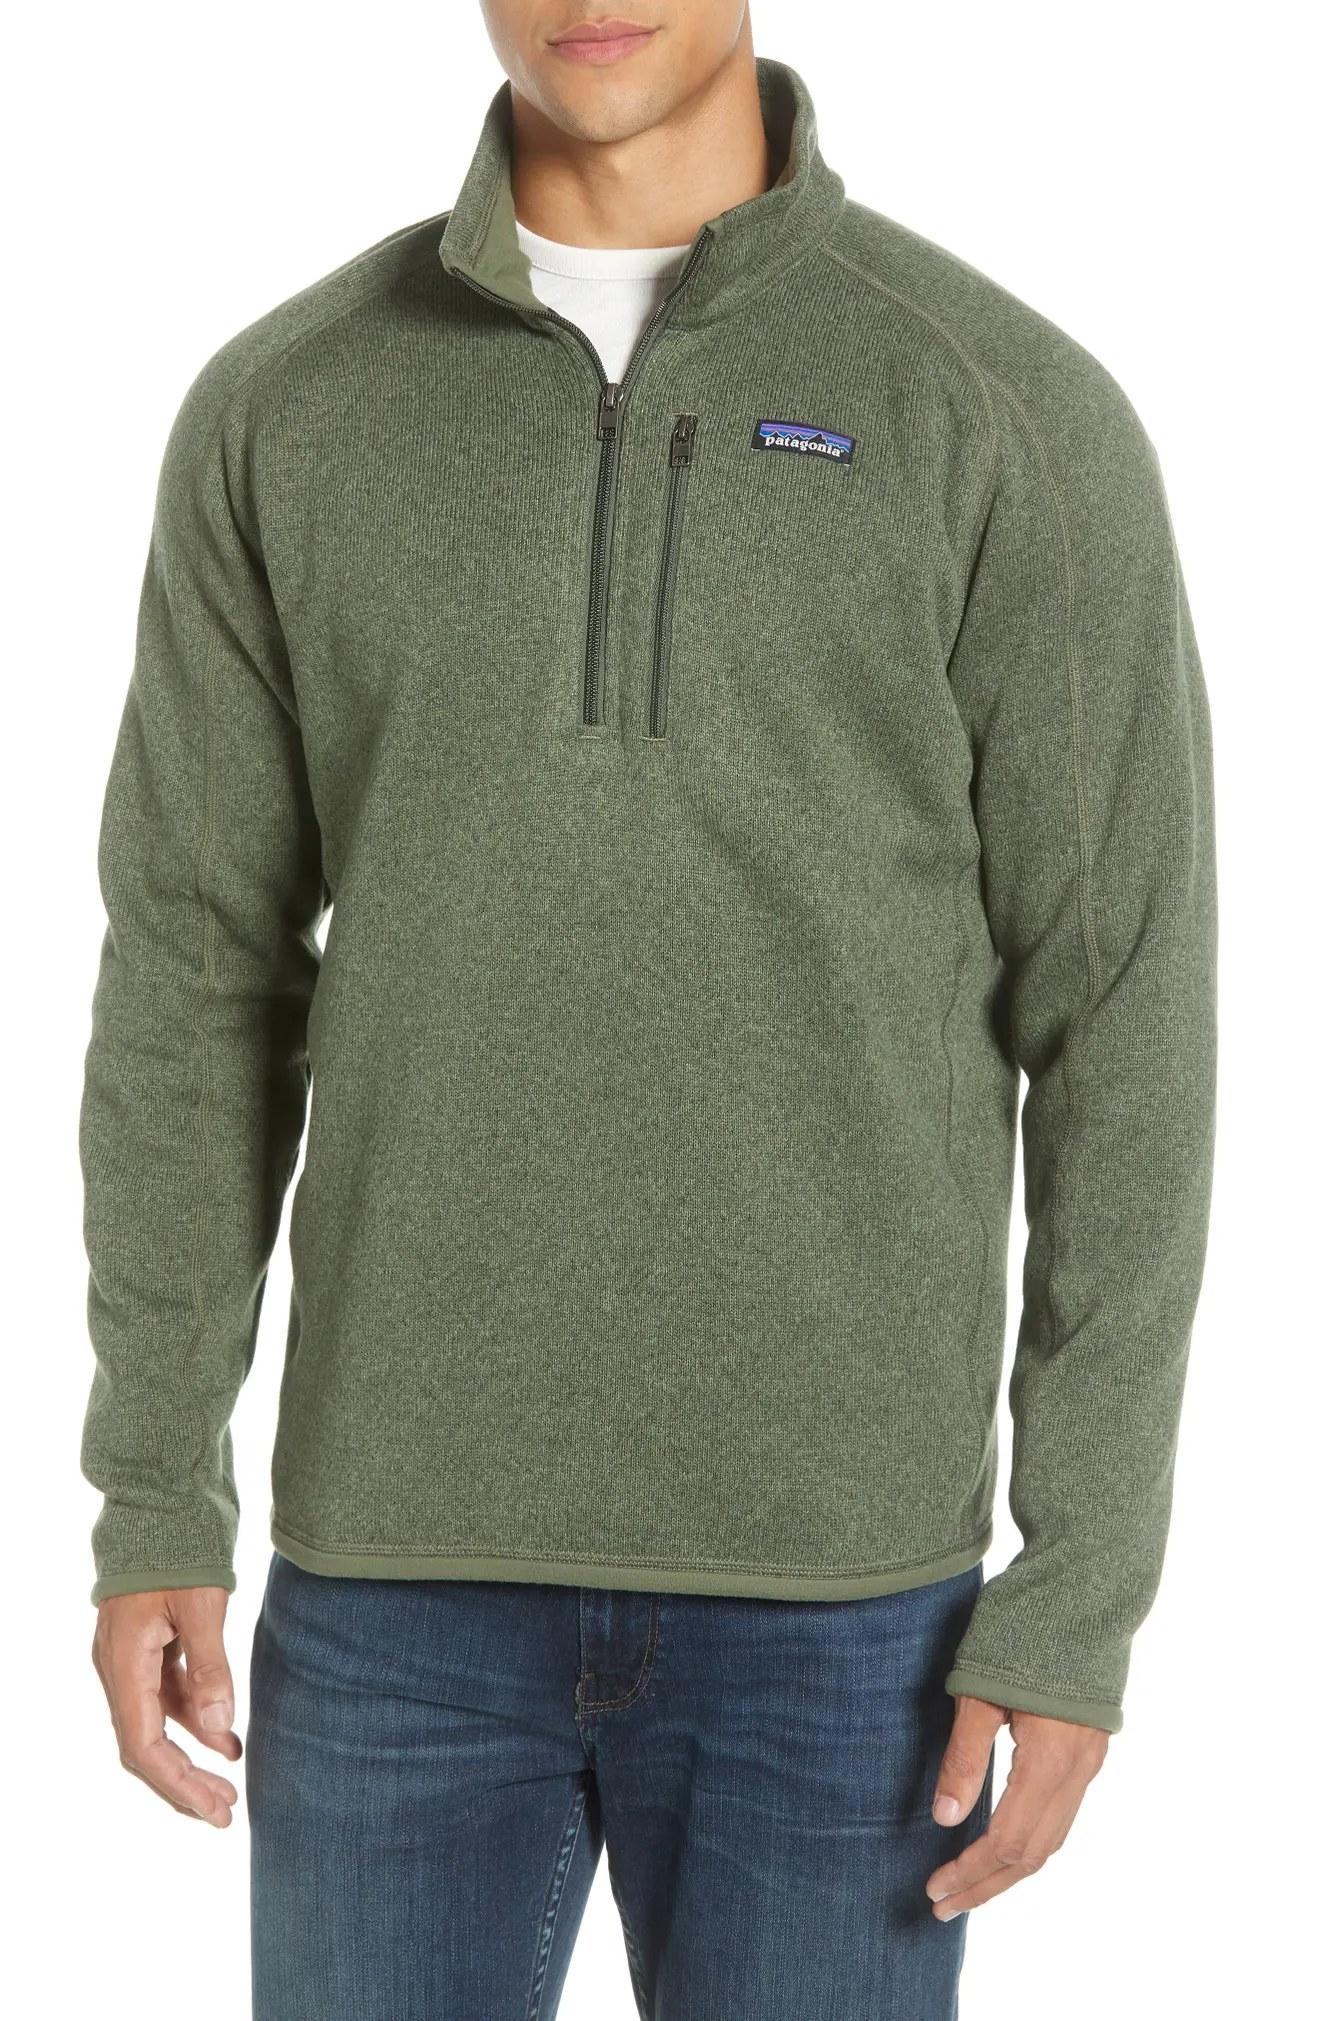 A close-up of the pullover sweater worn by a model